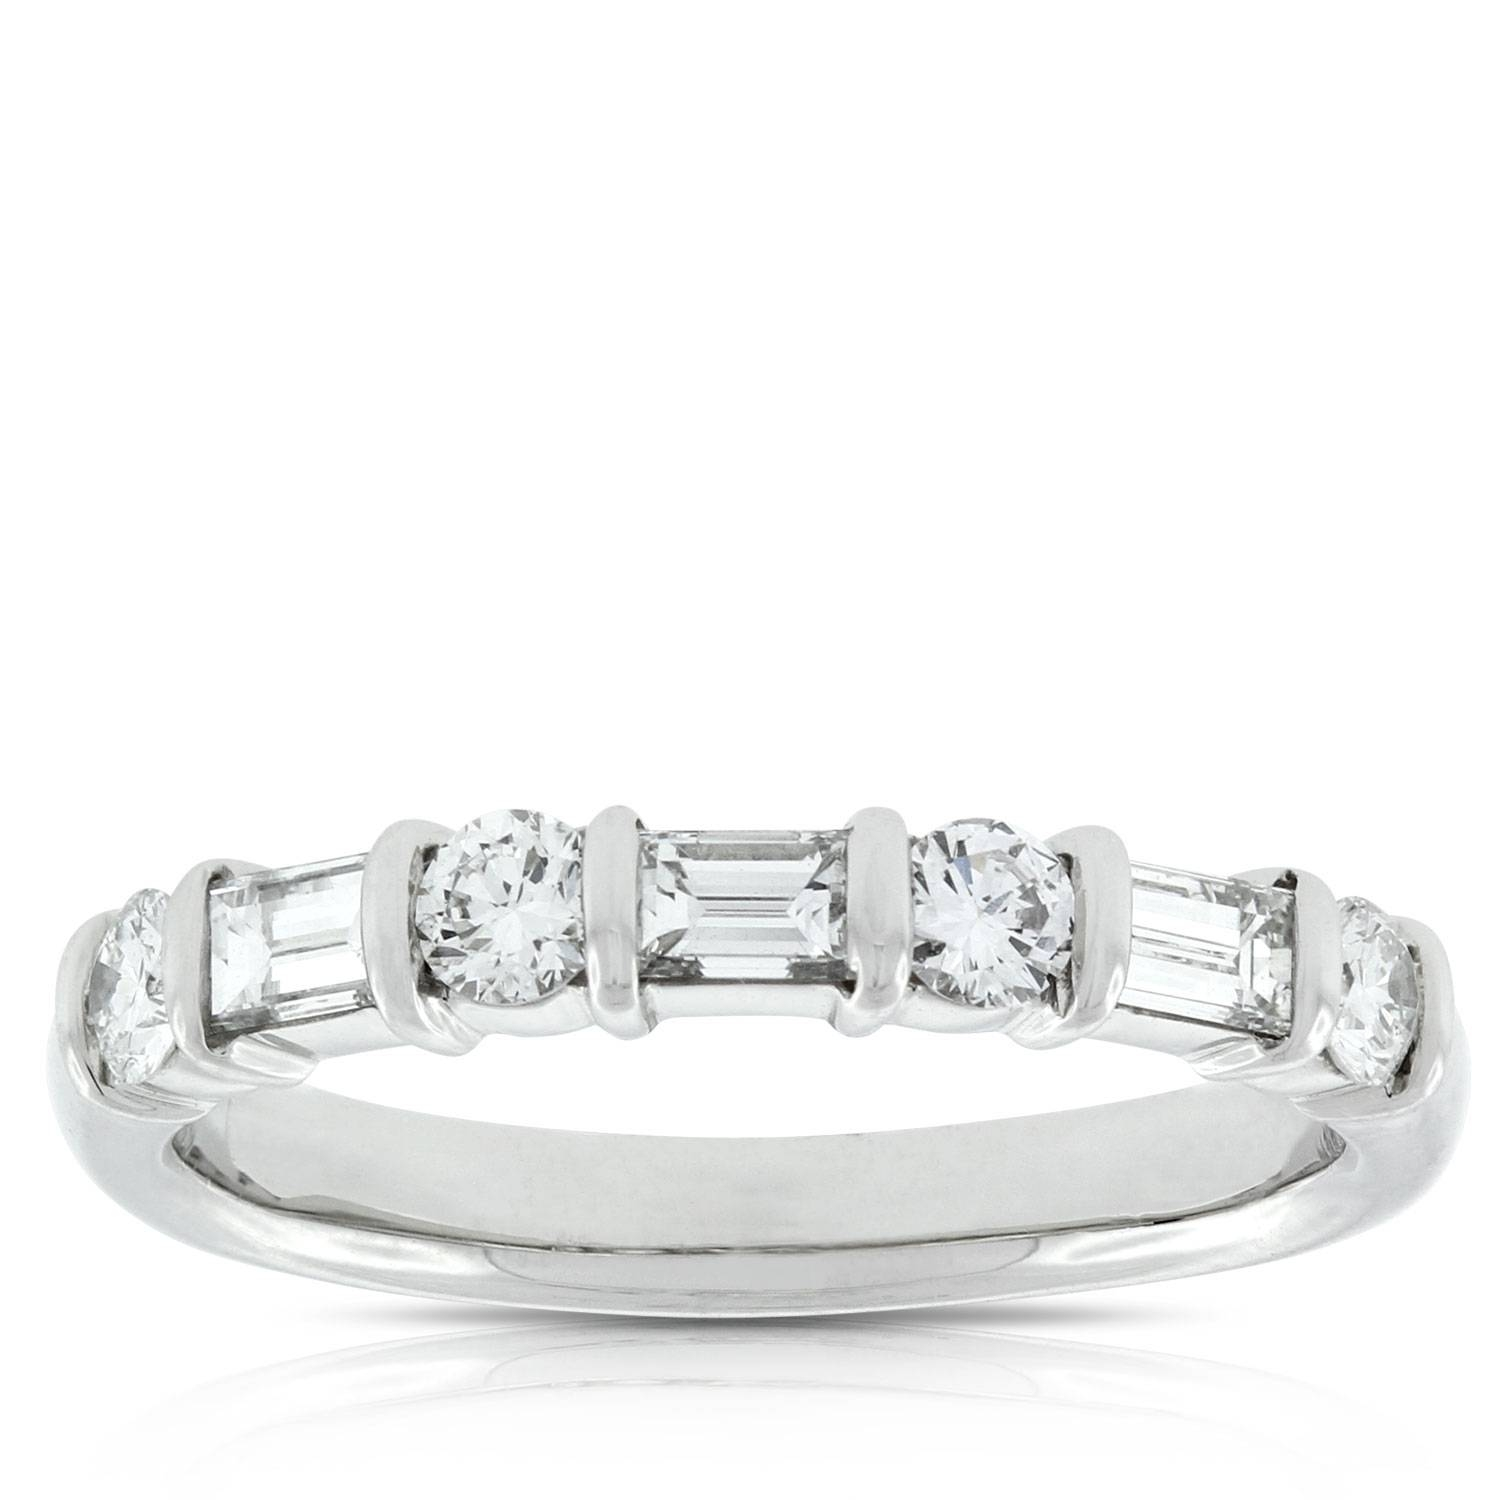 Baguette & Round Diamond Ring, 3/4 Carat In Platinum | Ben Bridge With Current Baguette Anniversary Rings (Gallery 23 of 25)